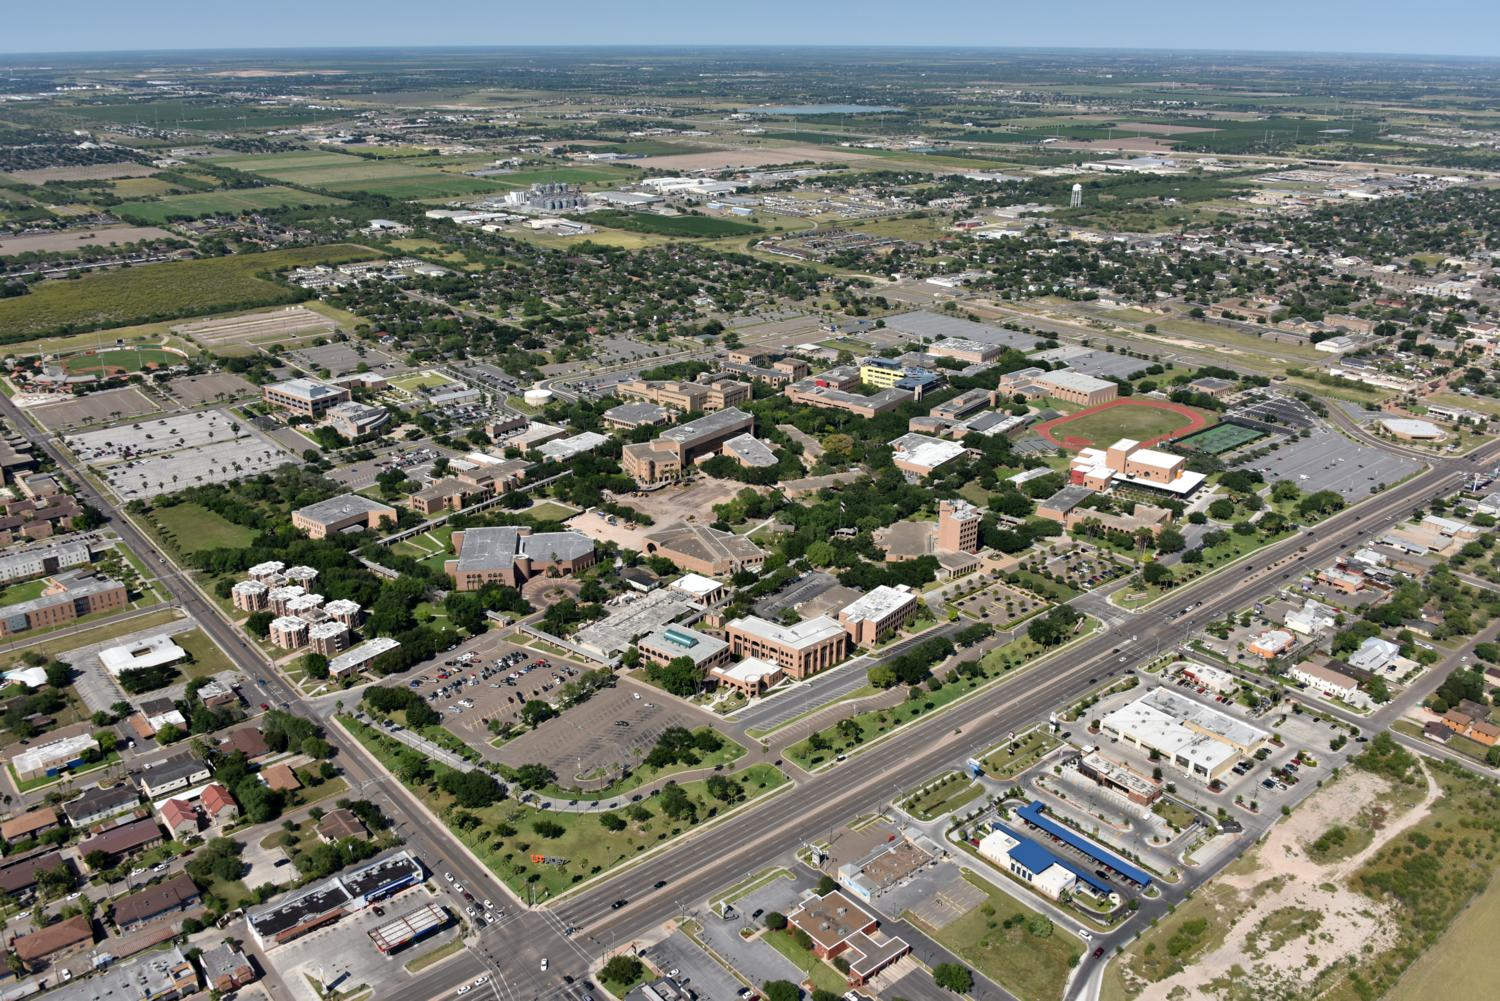 UTRGV, Edinburg, Texas - Edinburg Aerial Photographer - Aerial Drone Image - Aerial Drone Video - Edinburg, TX - Rio Grande Valley, Texas